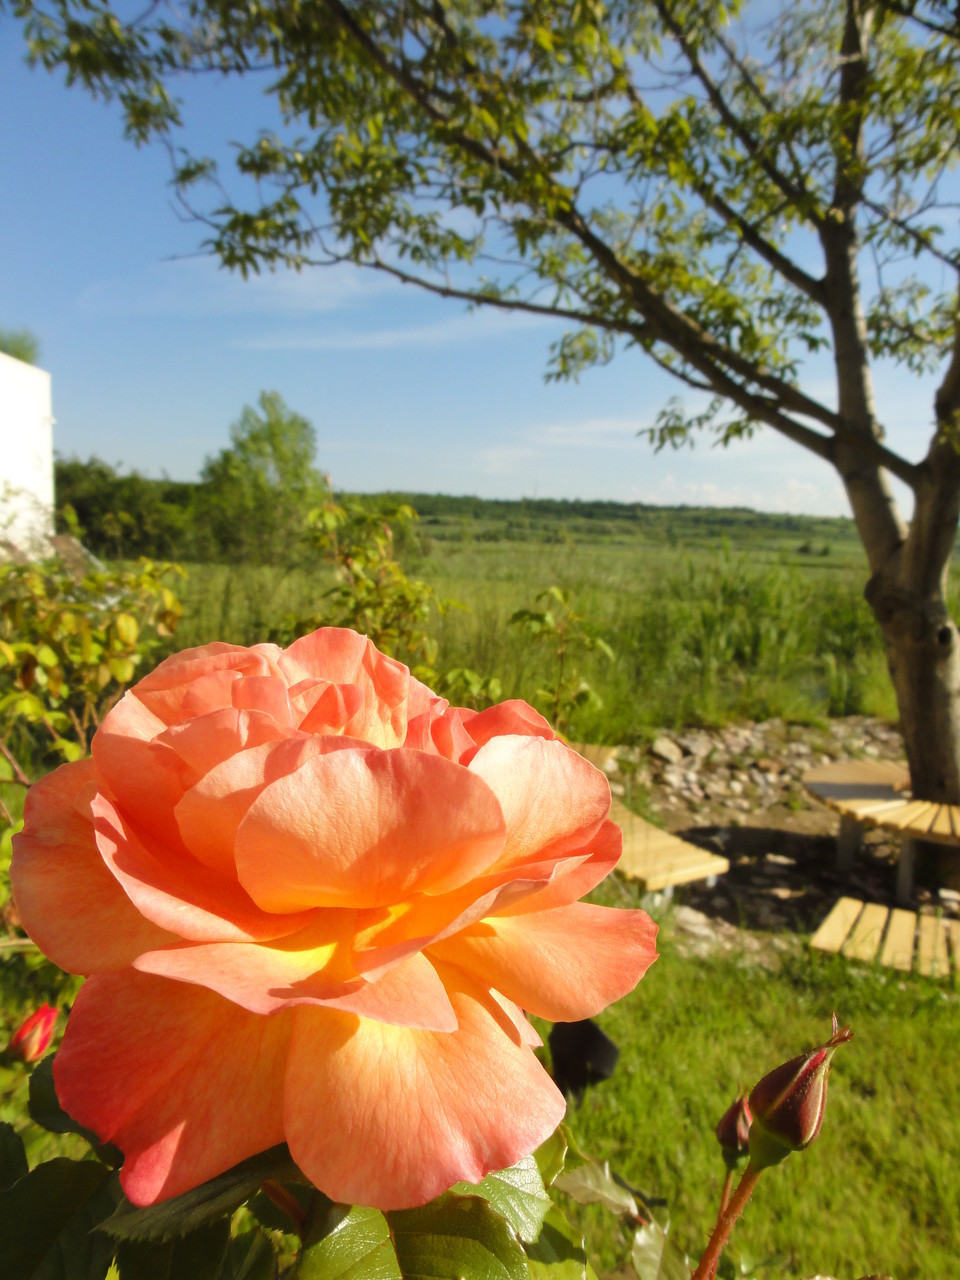 In June, the roses in our garden are in full bloom